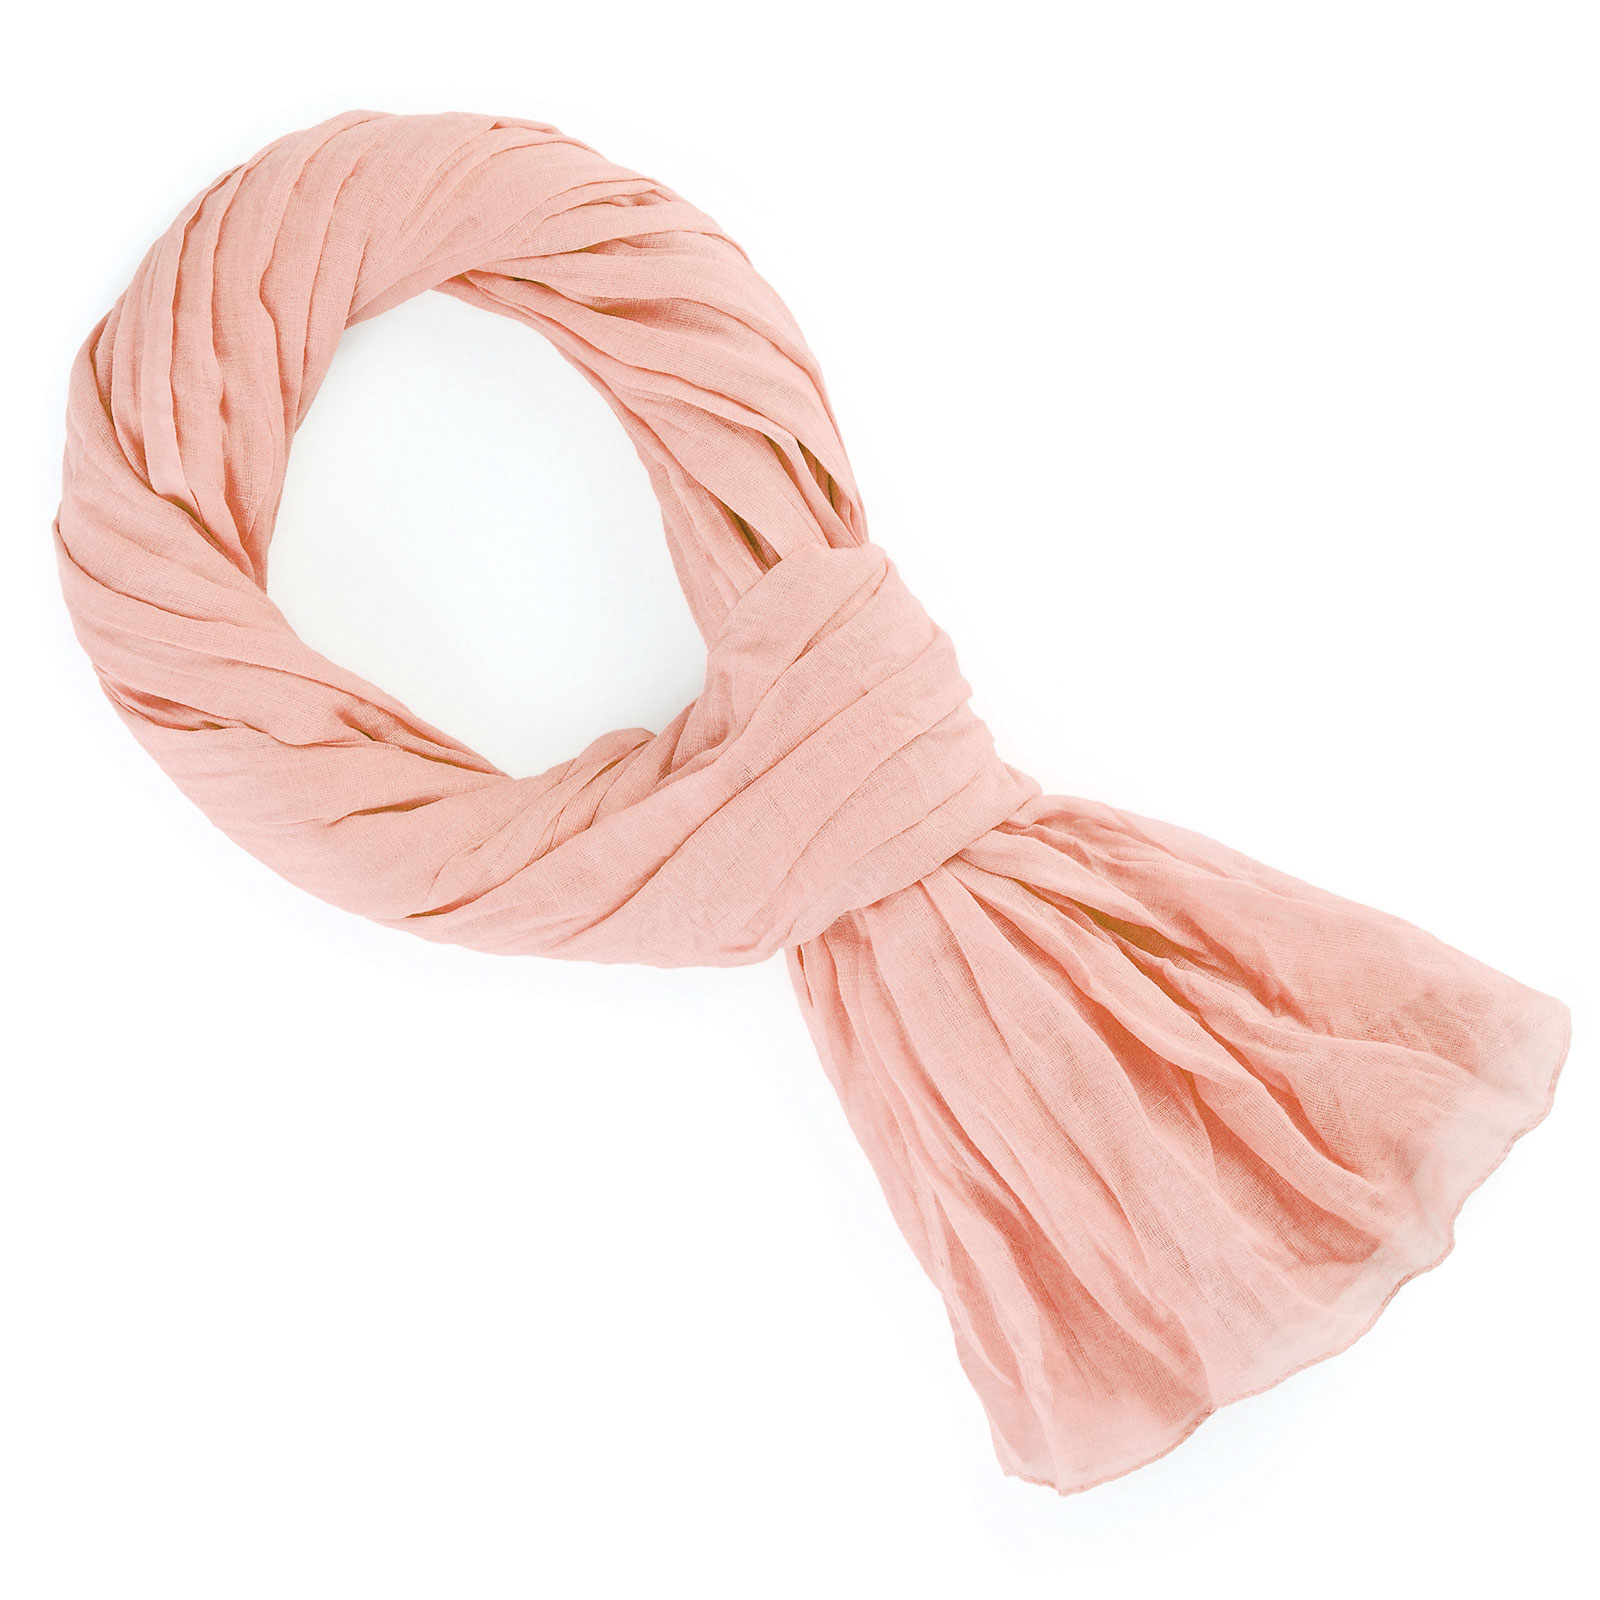 AT-04442-F16-cheche-rose-de-nymphe